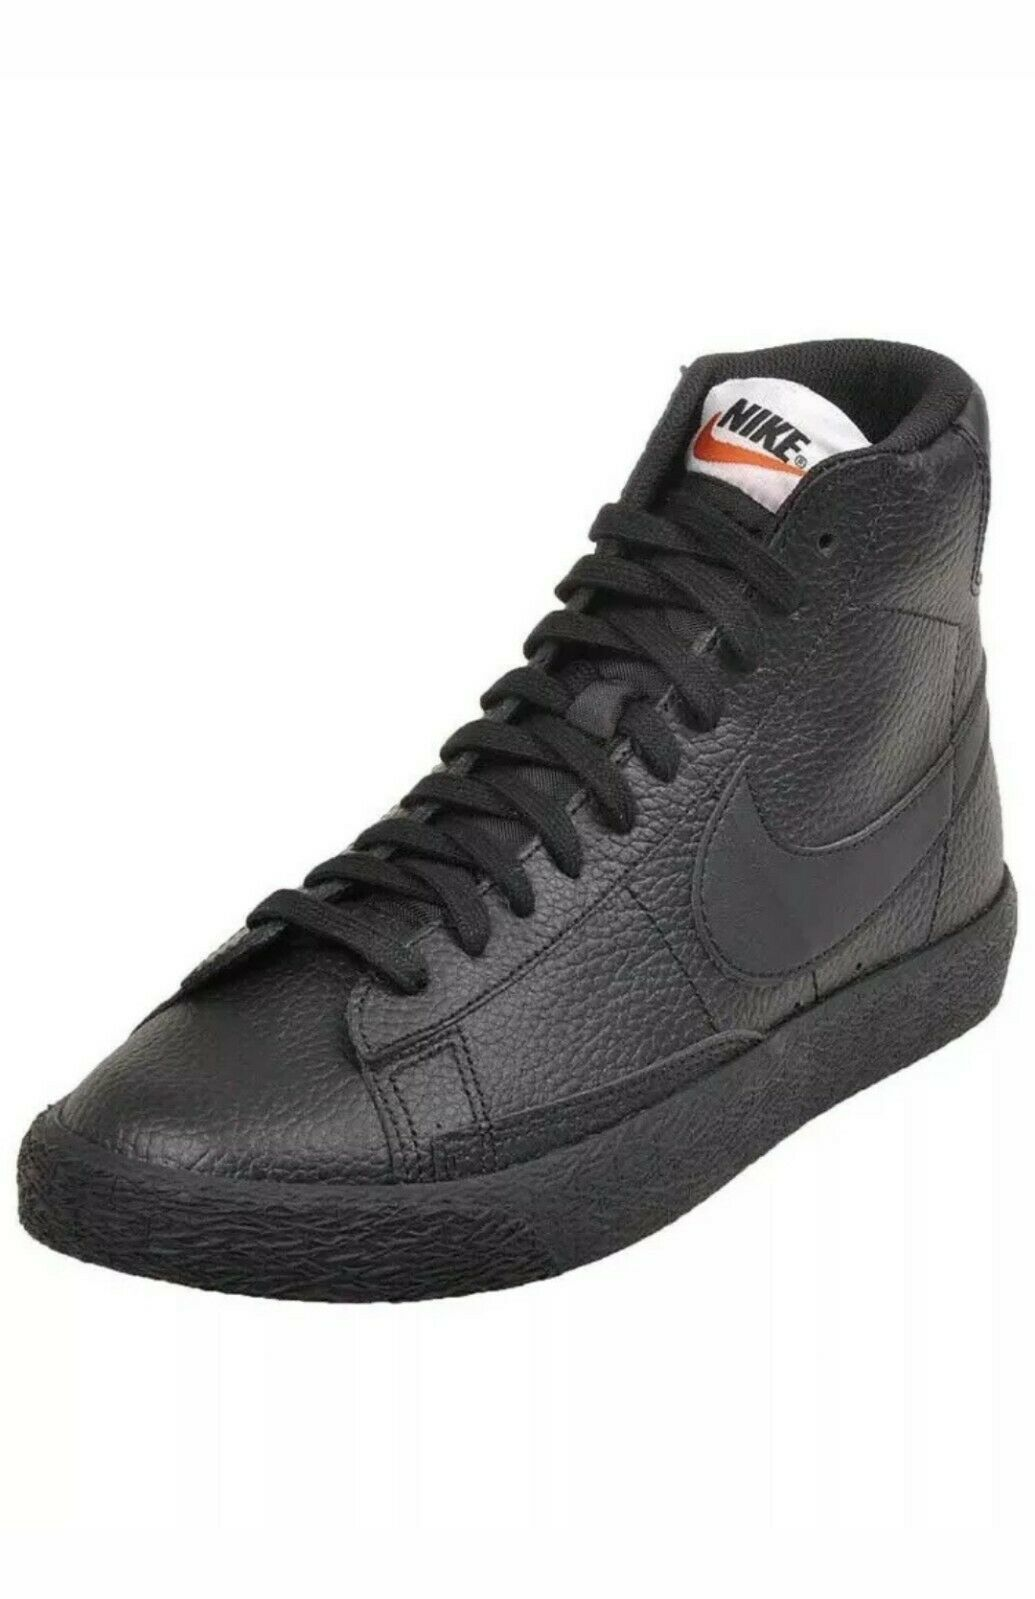 Youth Nike Blazer Mid GS lifestyle Shoes Sneakers Leather Black 895850 001